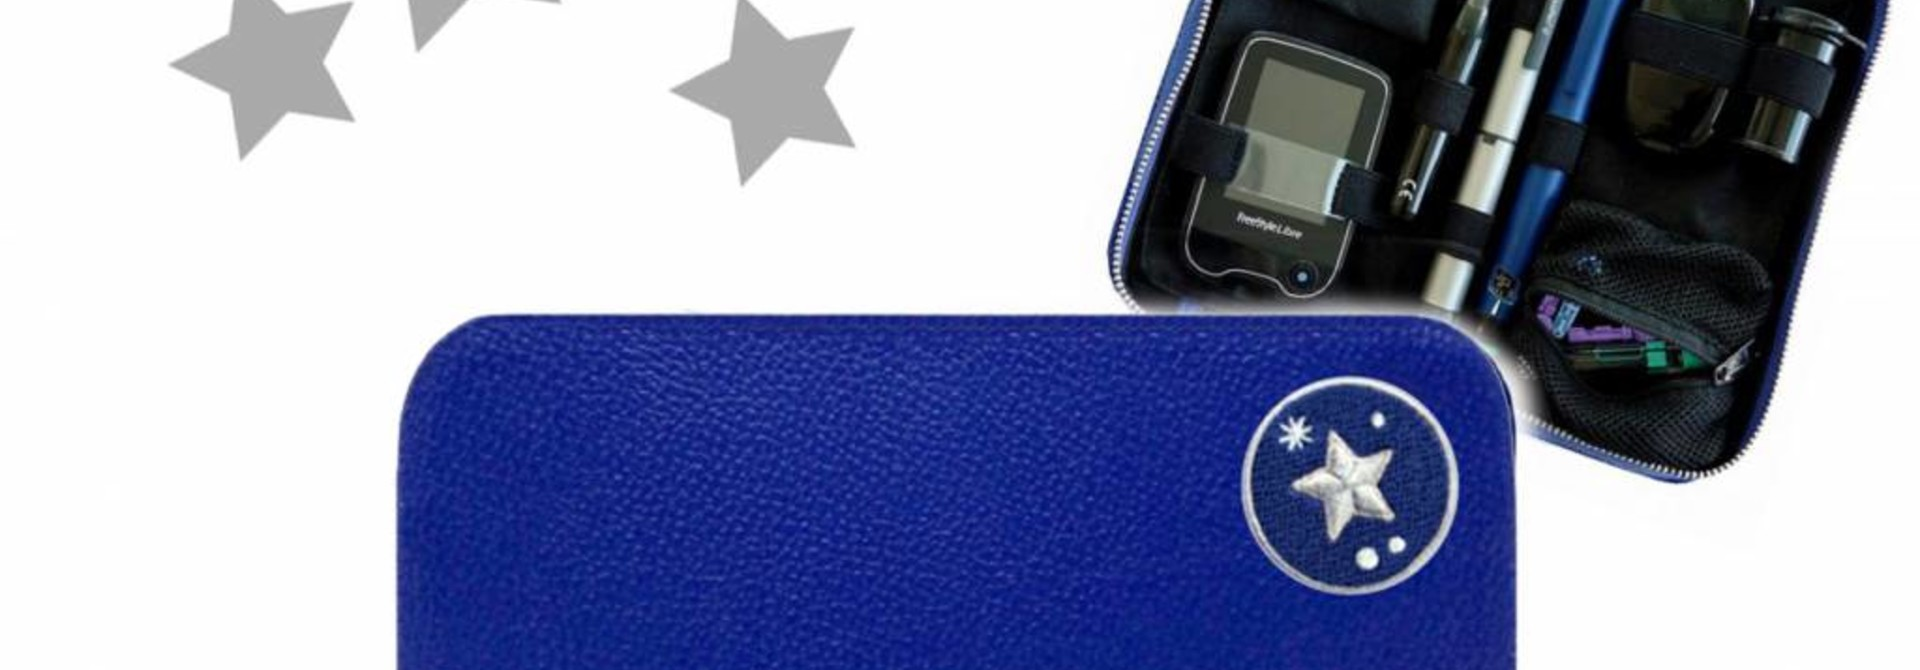 KIDS Case  - Blau STAR (inkl. Patch & Gurt)